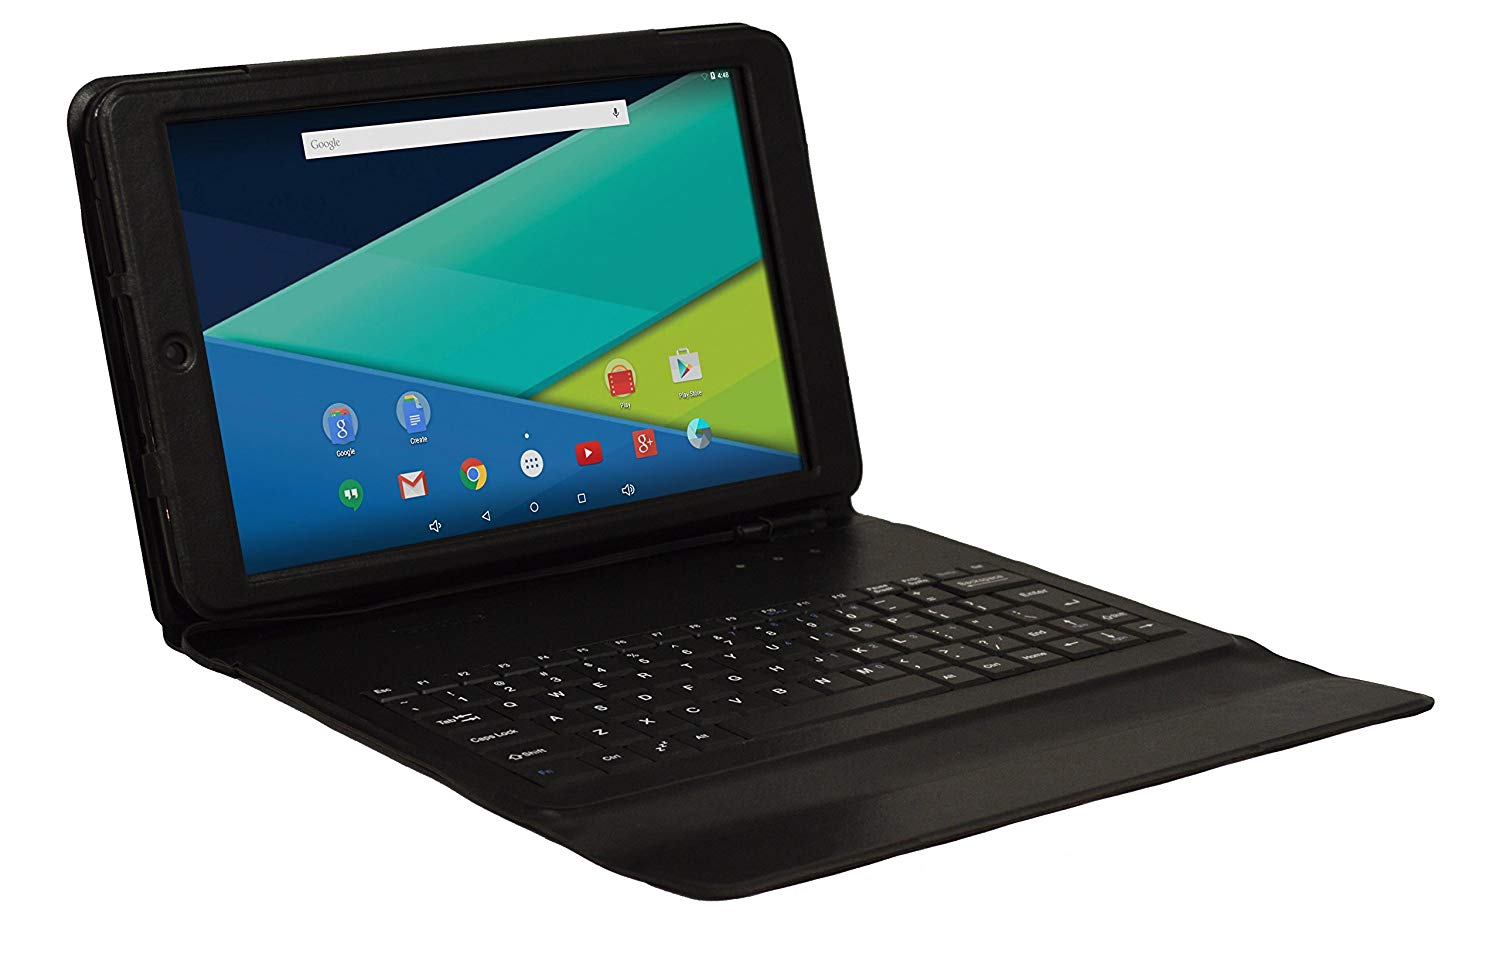 """Visual Land Prestige Elite 10QS - 10.1"""" QuadCore Lollipop 5.0 Android Tablet with Keyboard Case, 16GB, IPS 1280x800 HD Screen, WiFi, Bluetooth ( Black )"""